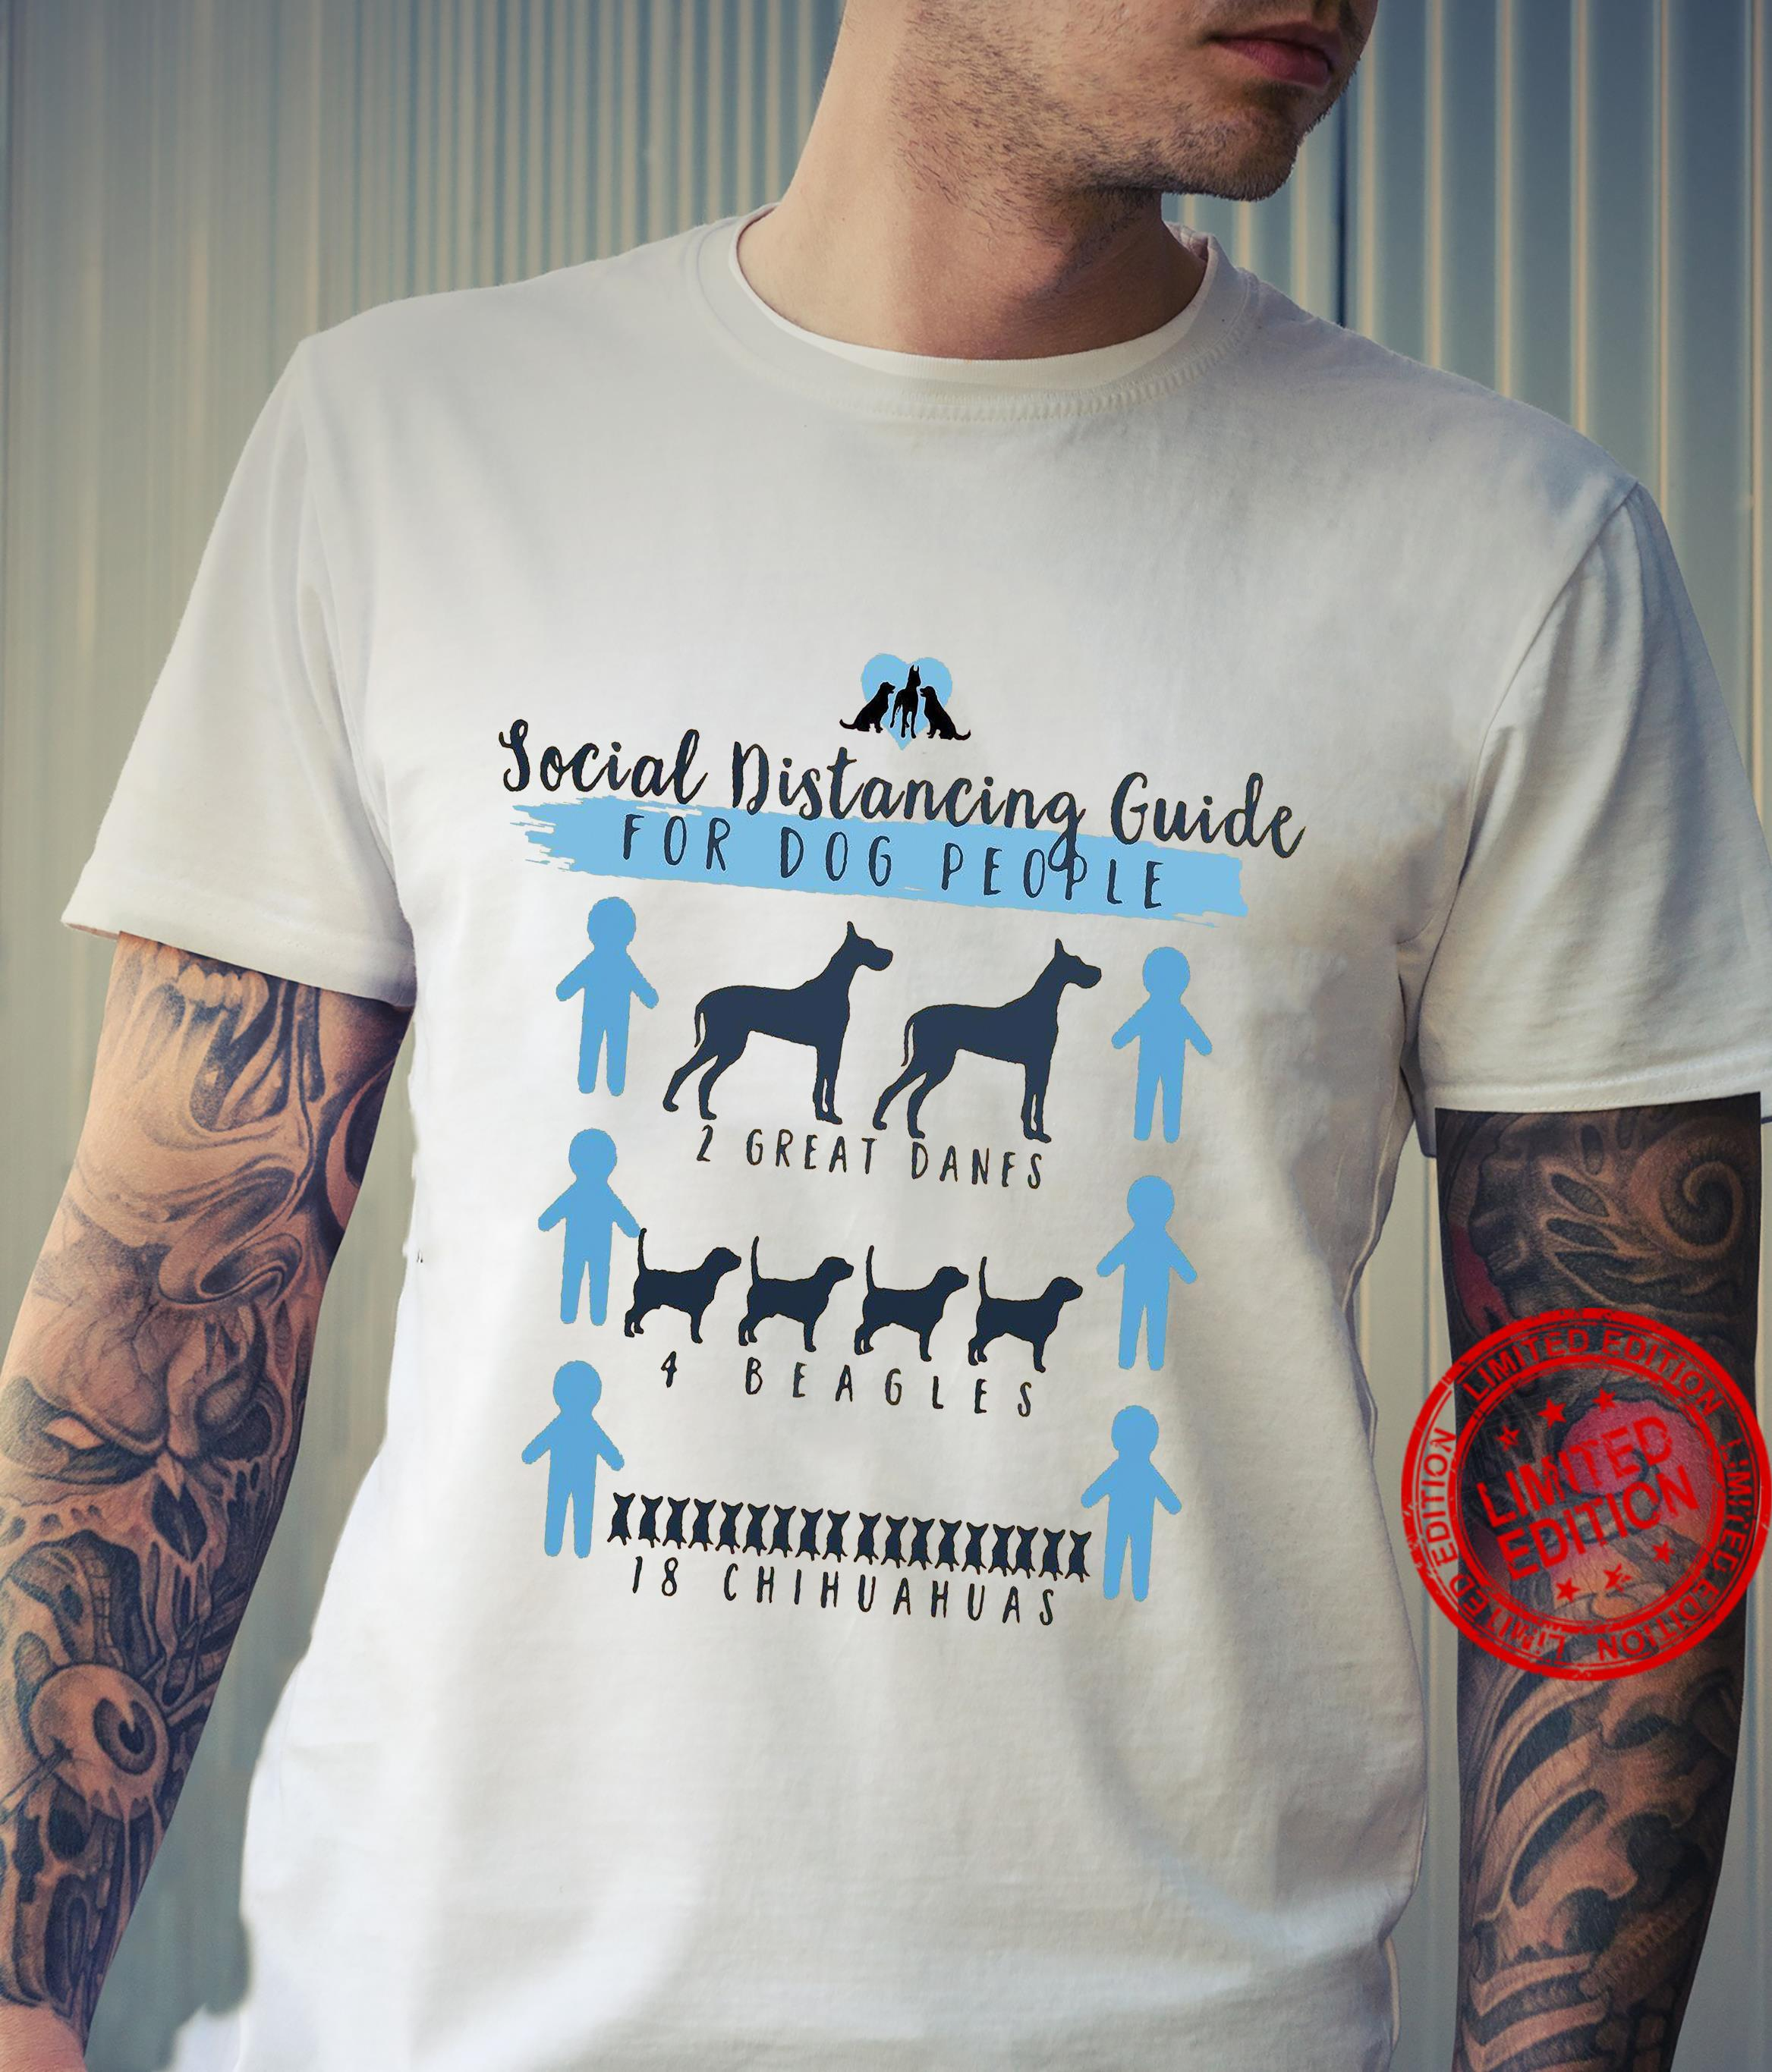 Social Distancing Guide For Dog People 2 Great Danes 4 Beagles 18 Chihuahuas Shirt